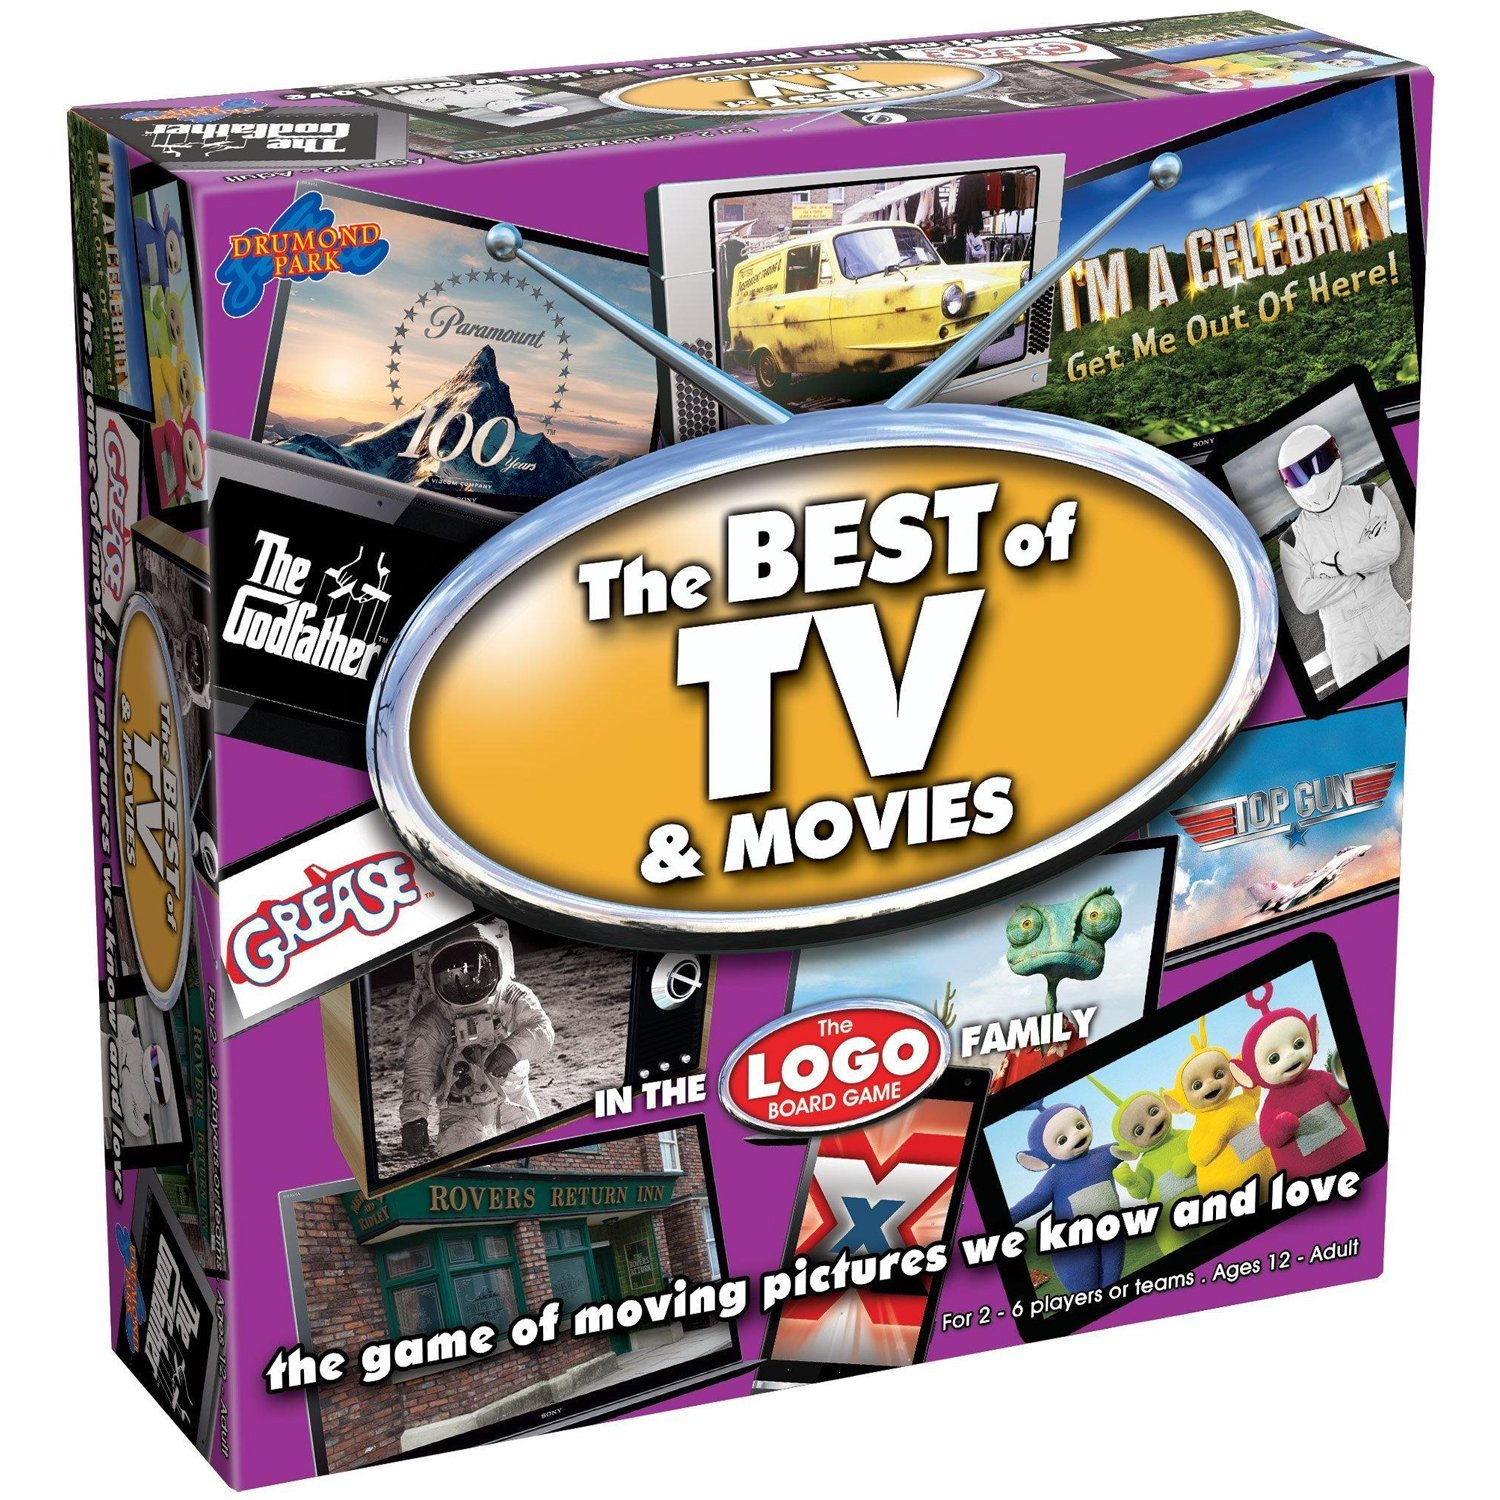 Best of TV and Movies Board Game: Drumond Park: Amazon.co.uk: Toys & Games